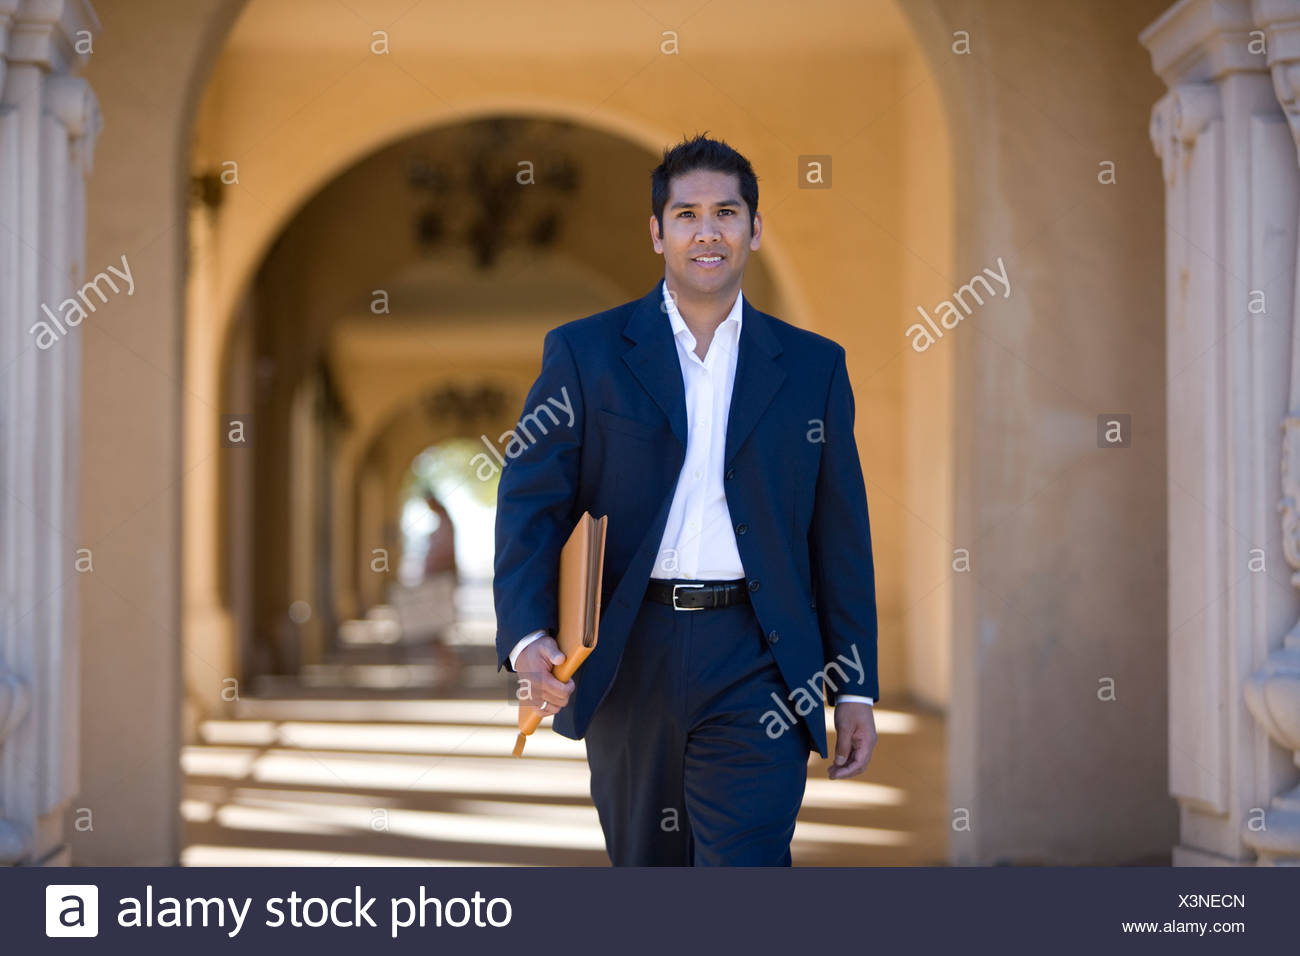 Businessman walking through archway - Stock Image